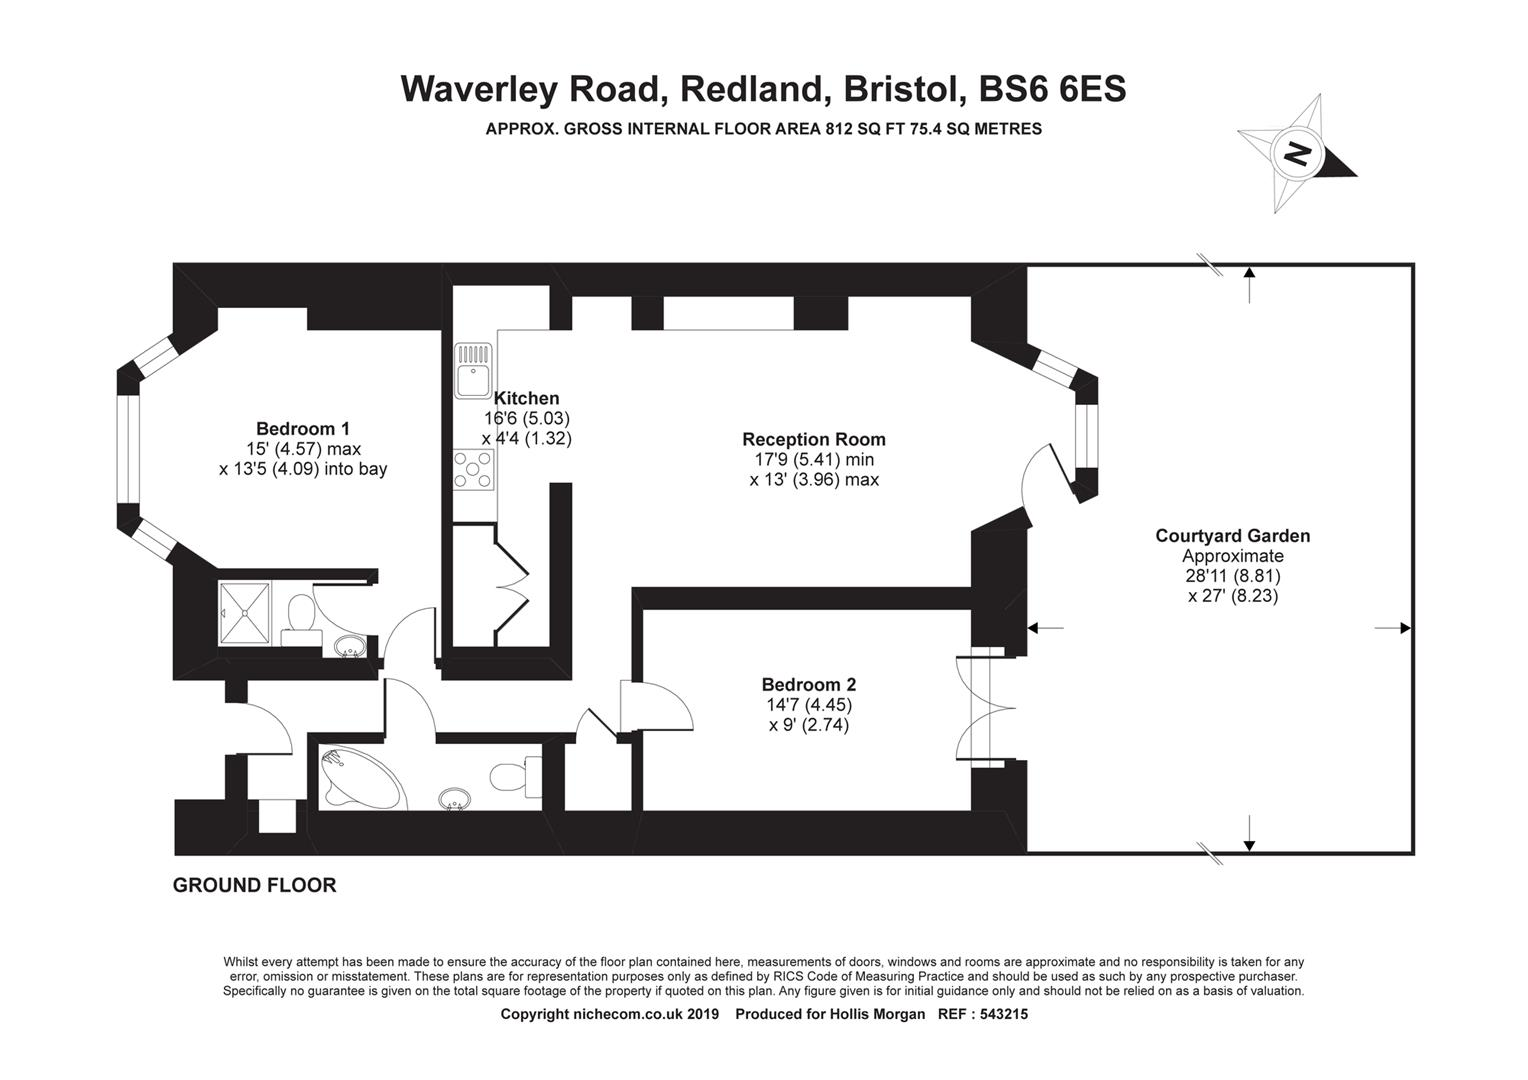 Floorplans For Waverley Road, Redland